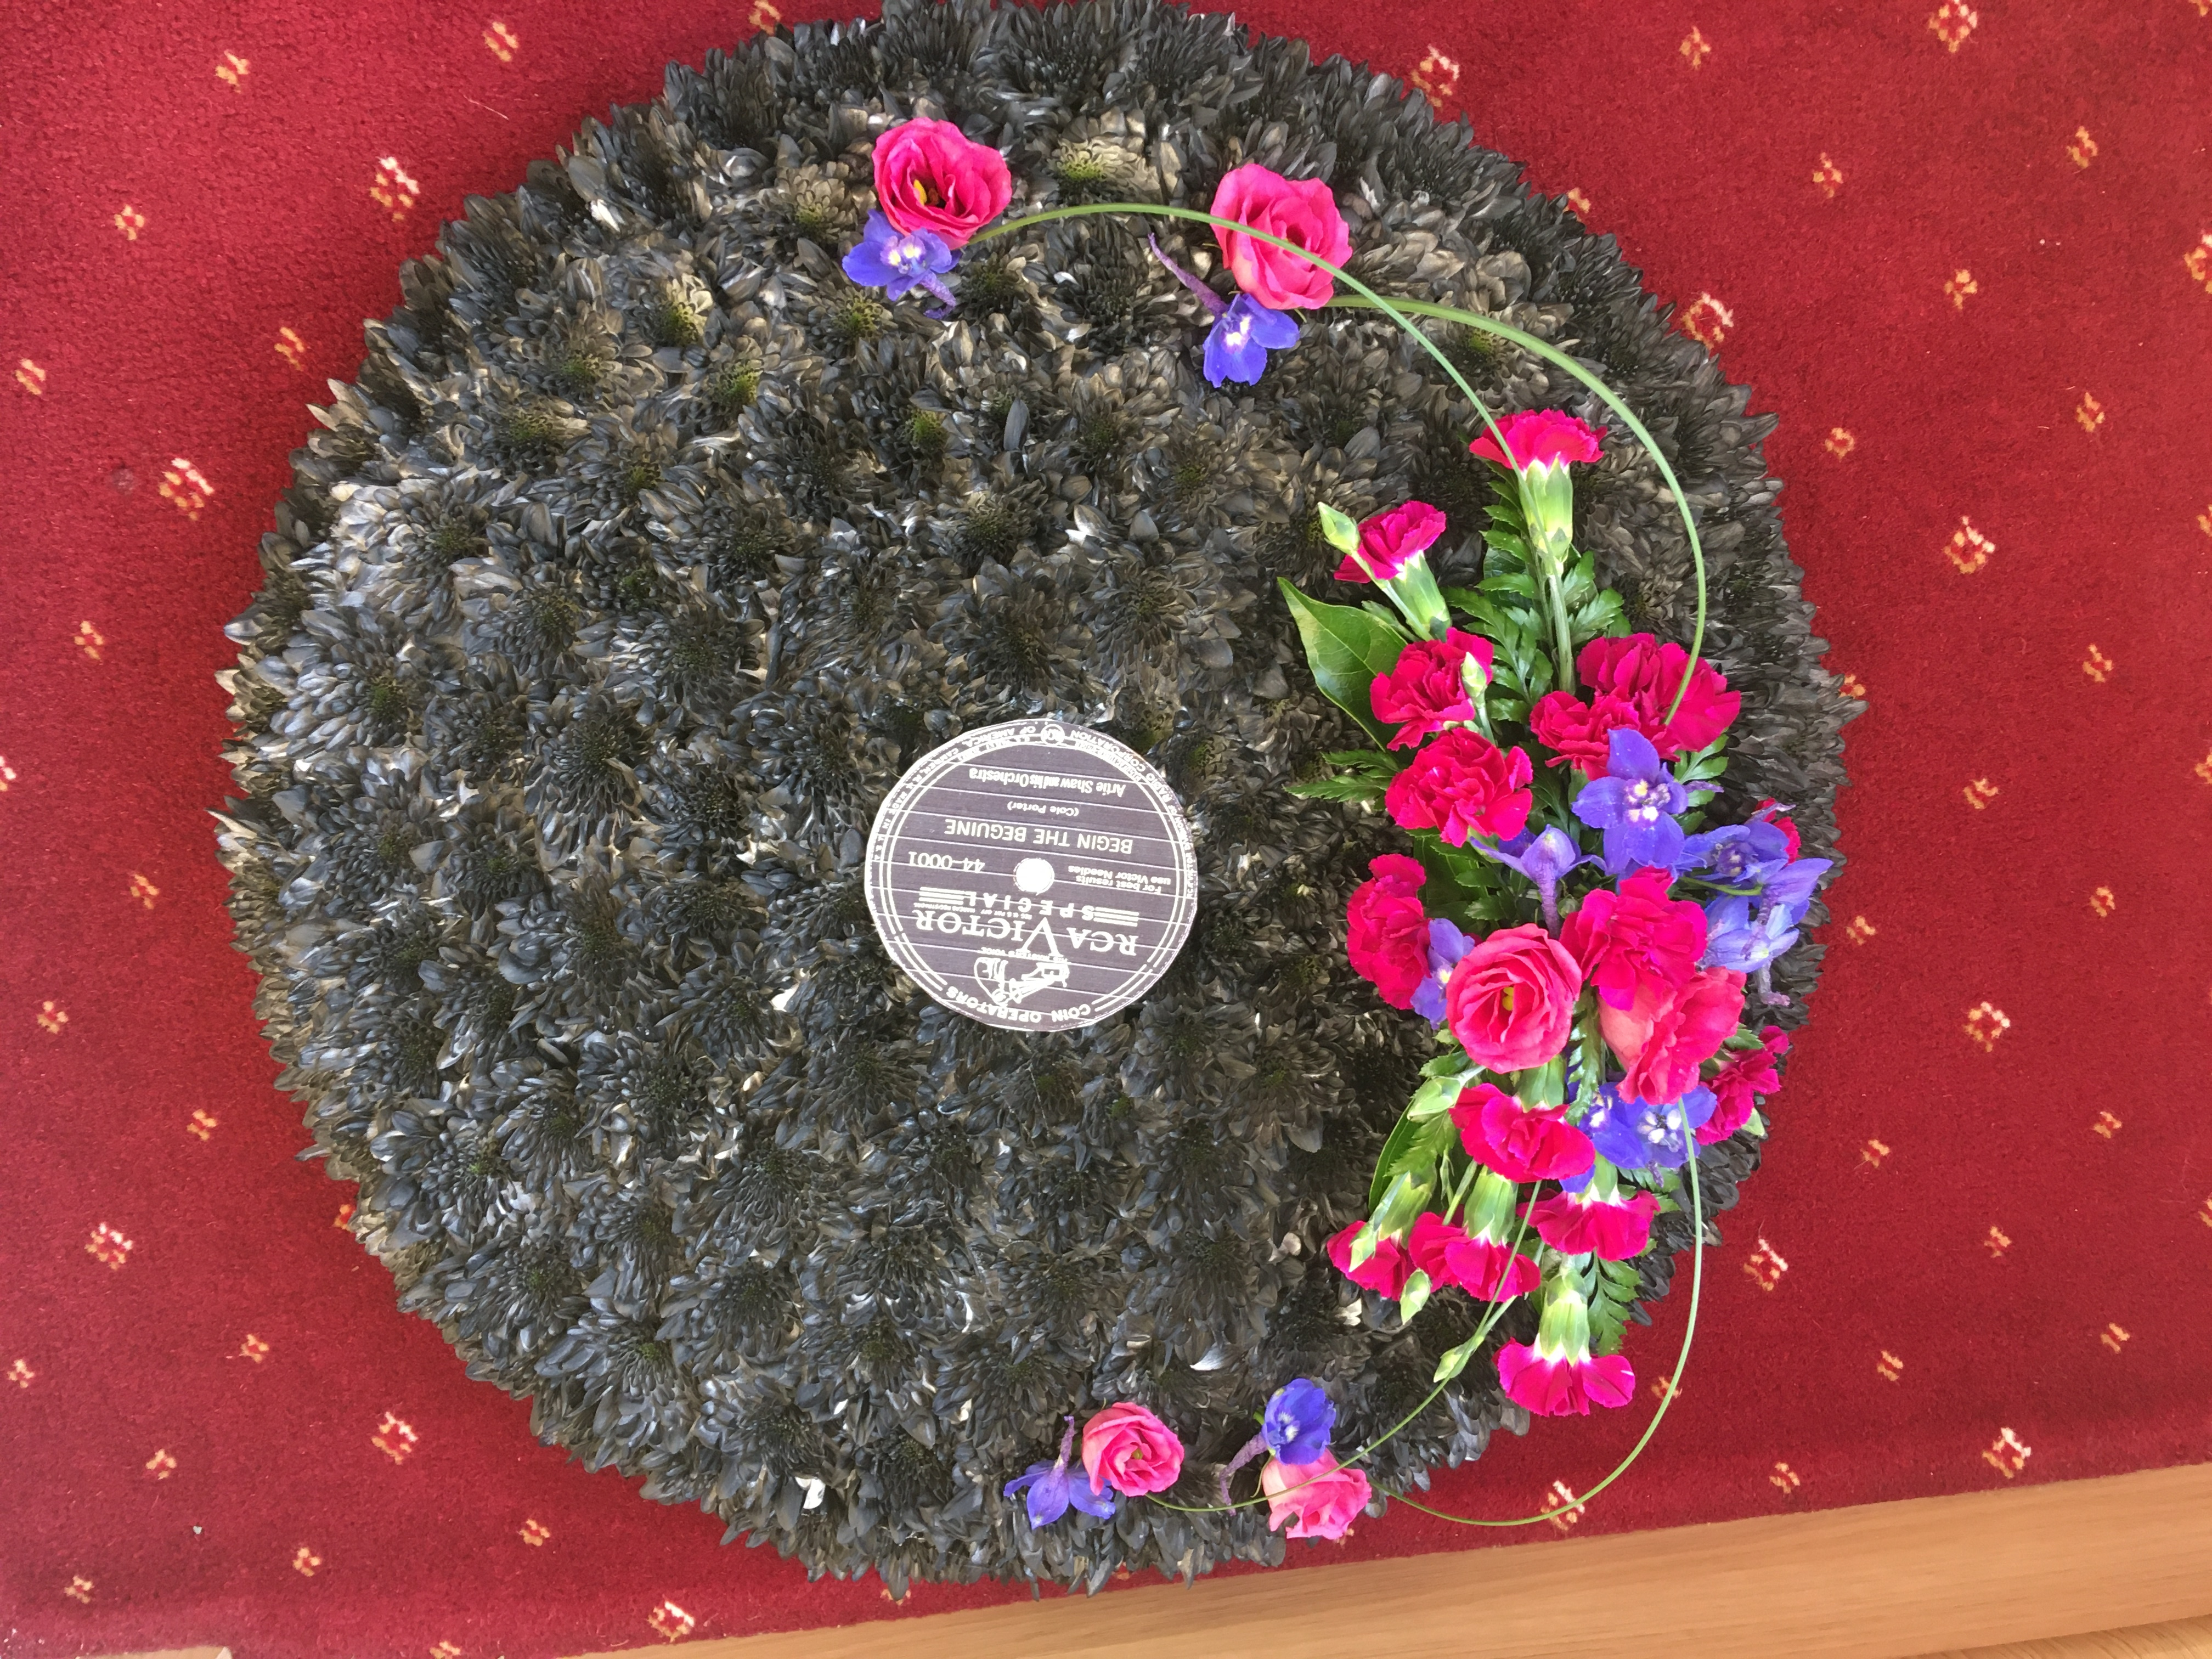 Record made from flowers